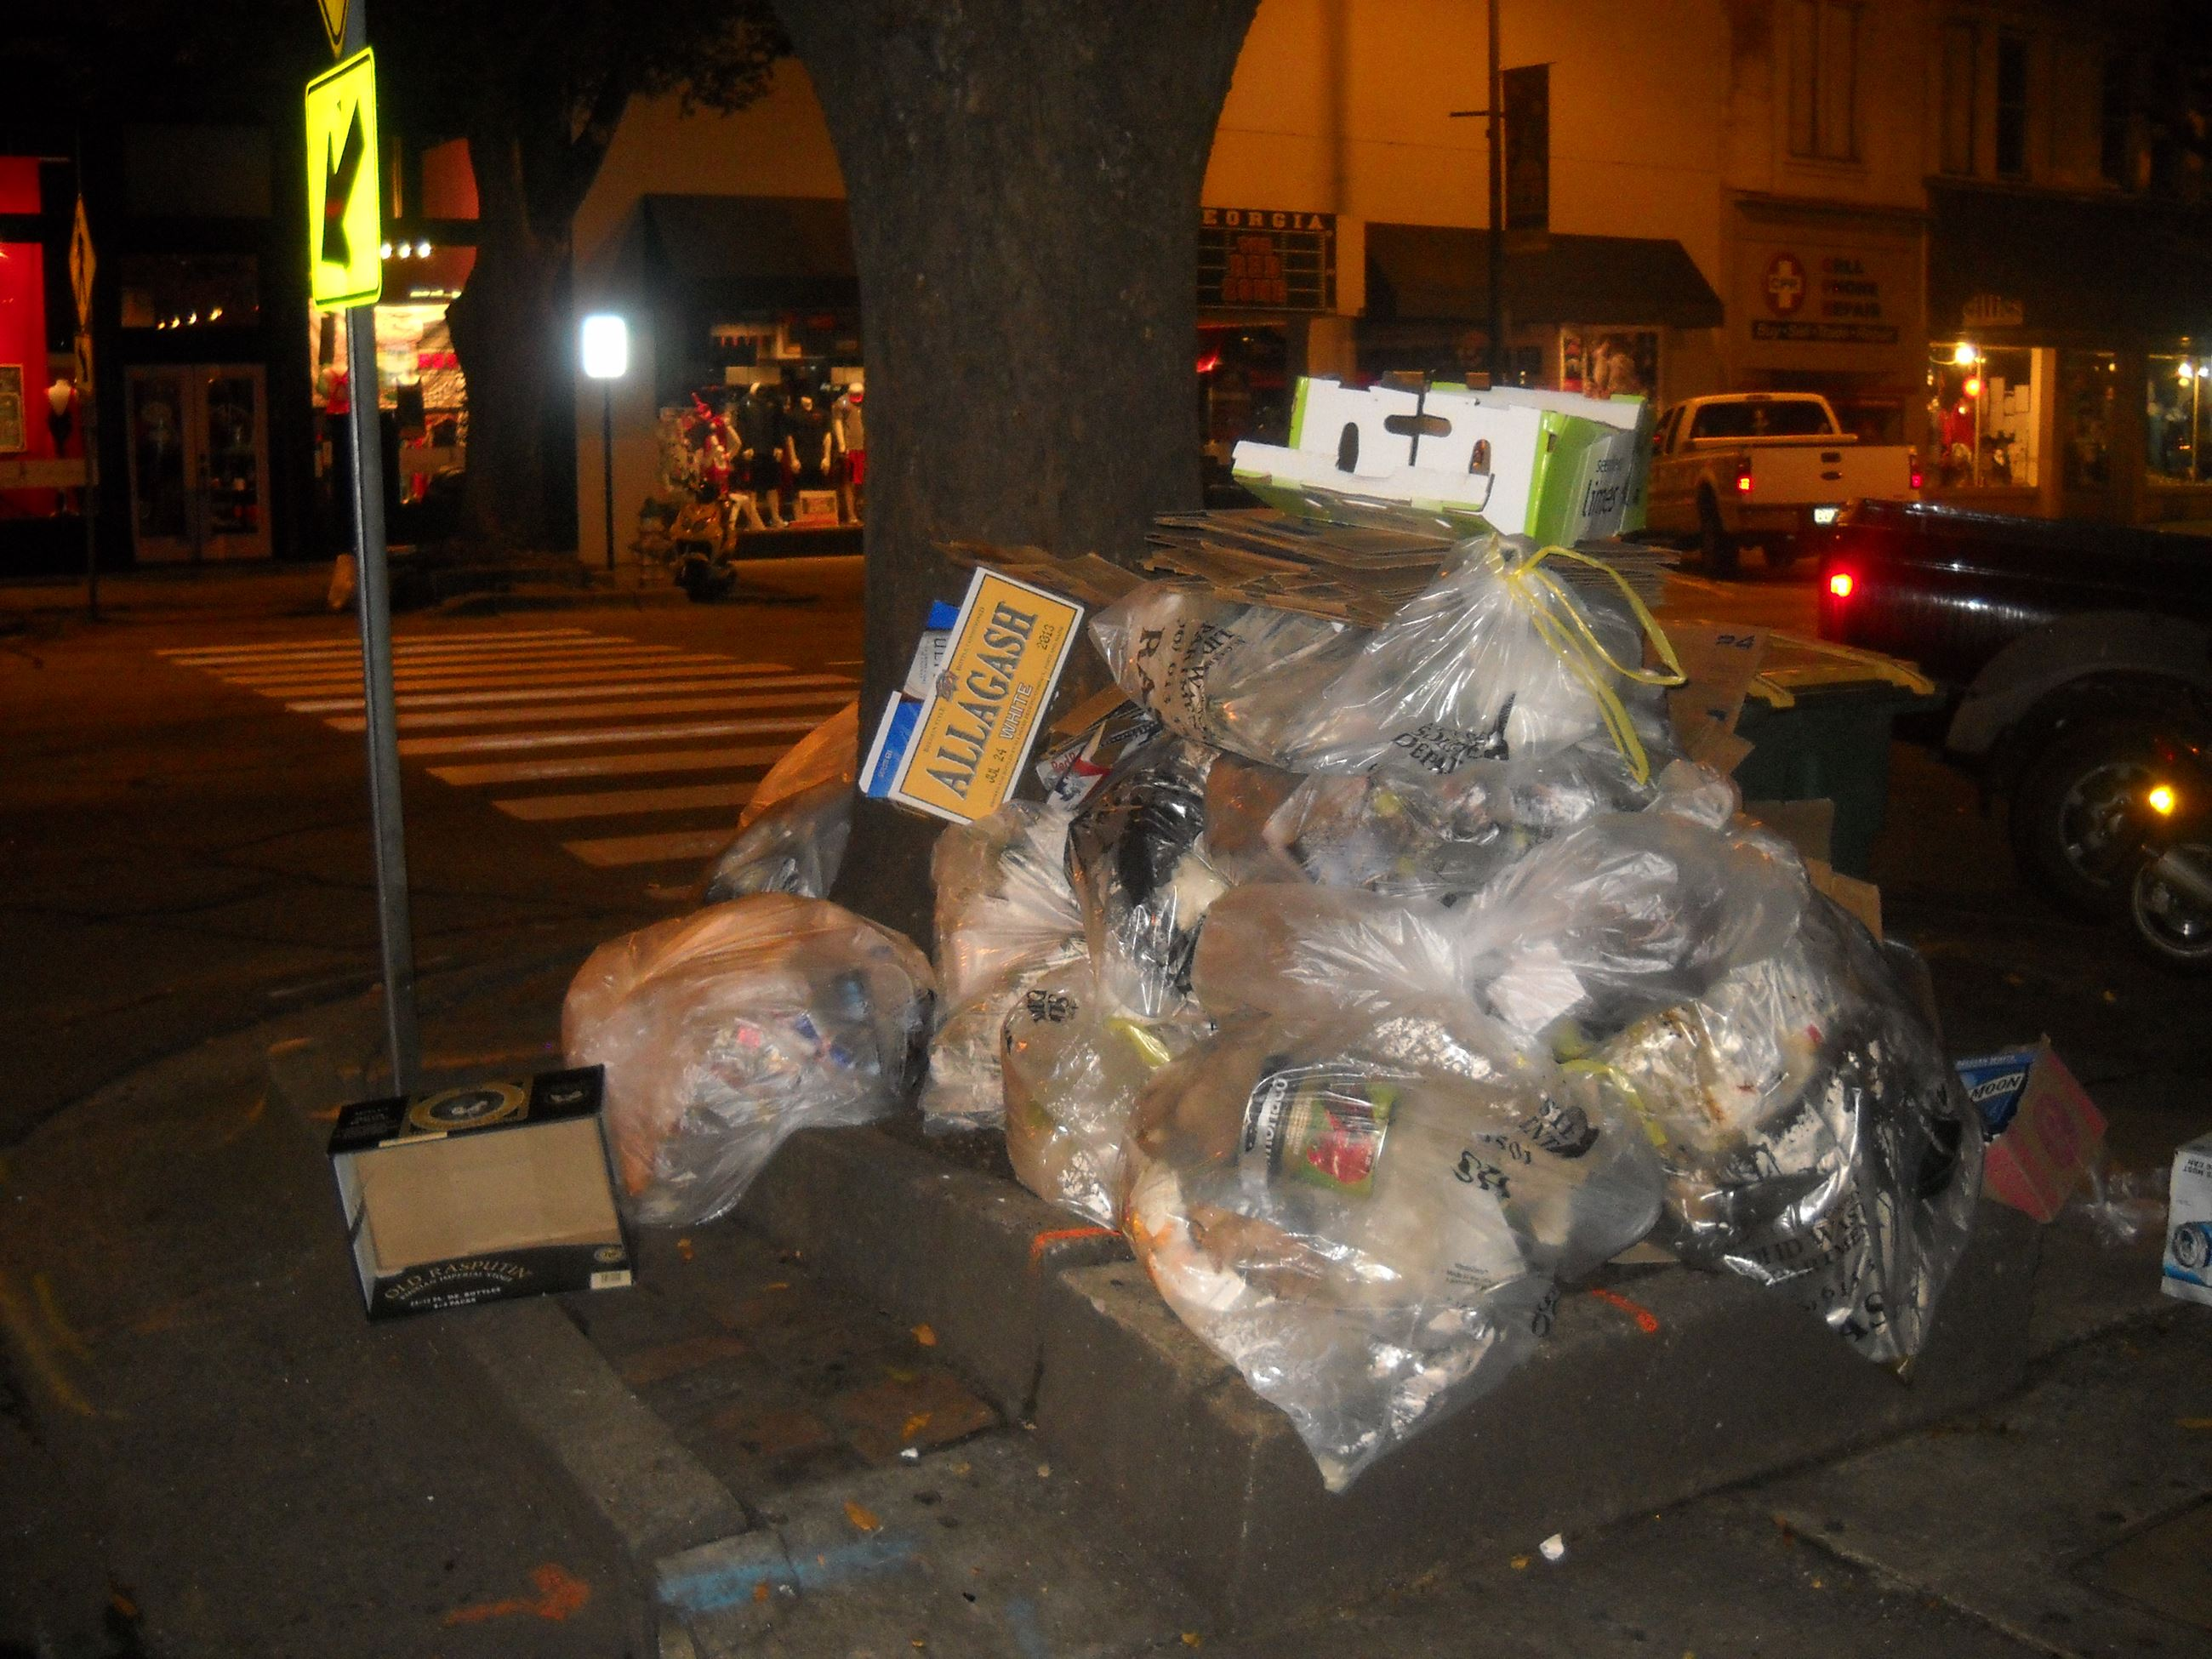 Trash on sidewalks